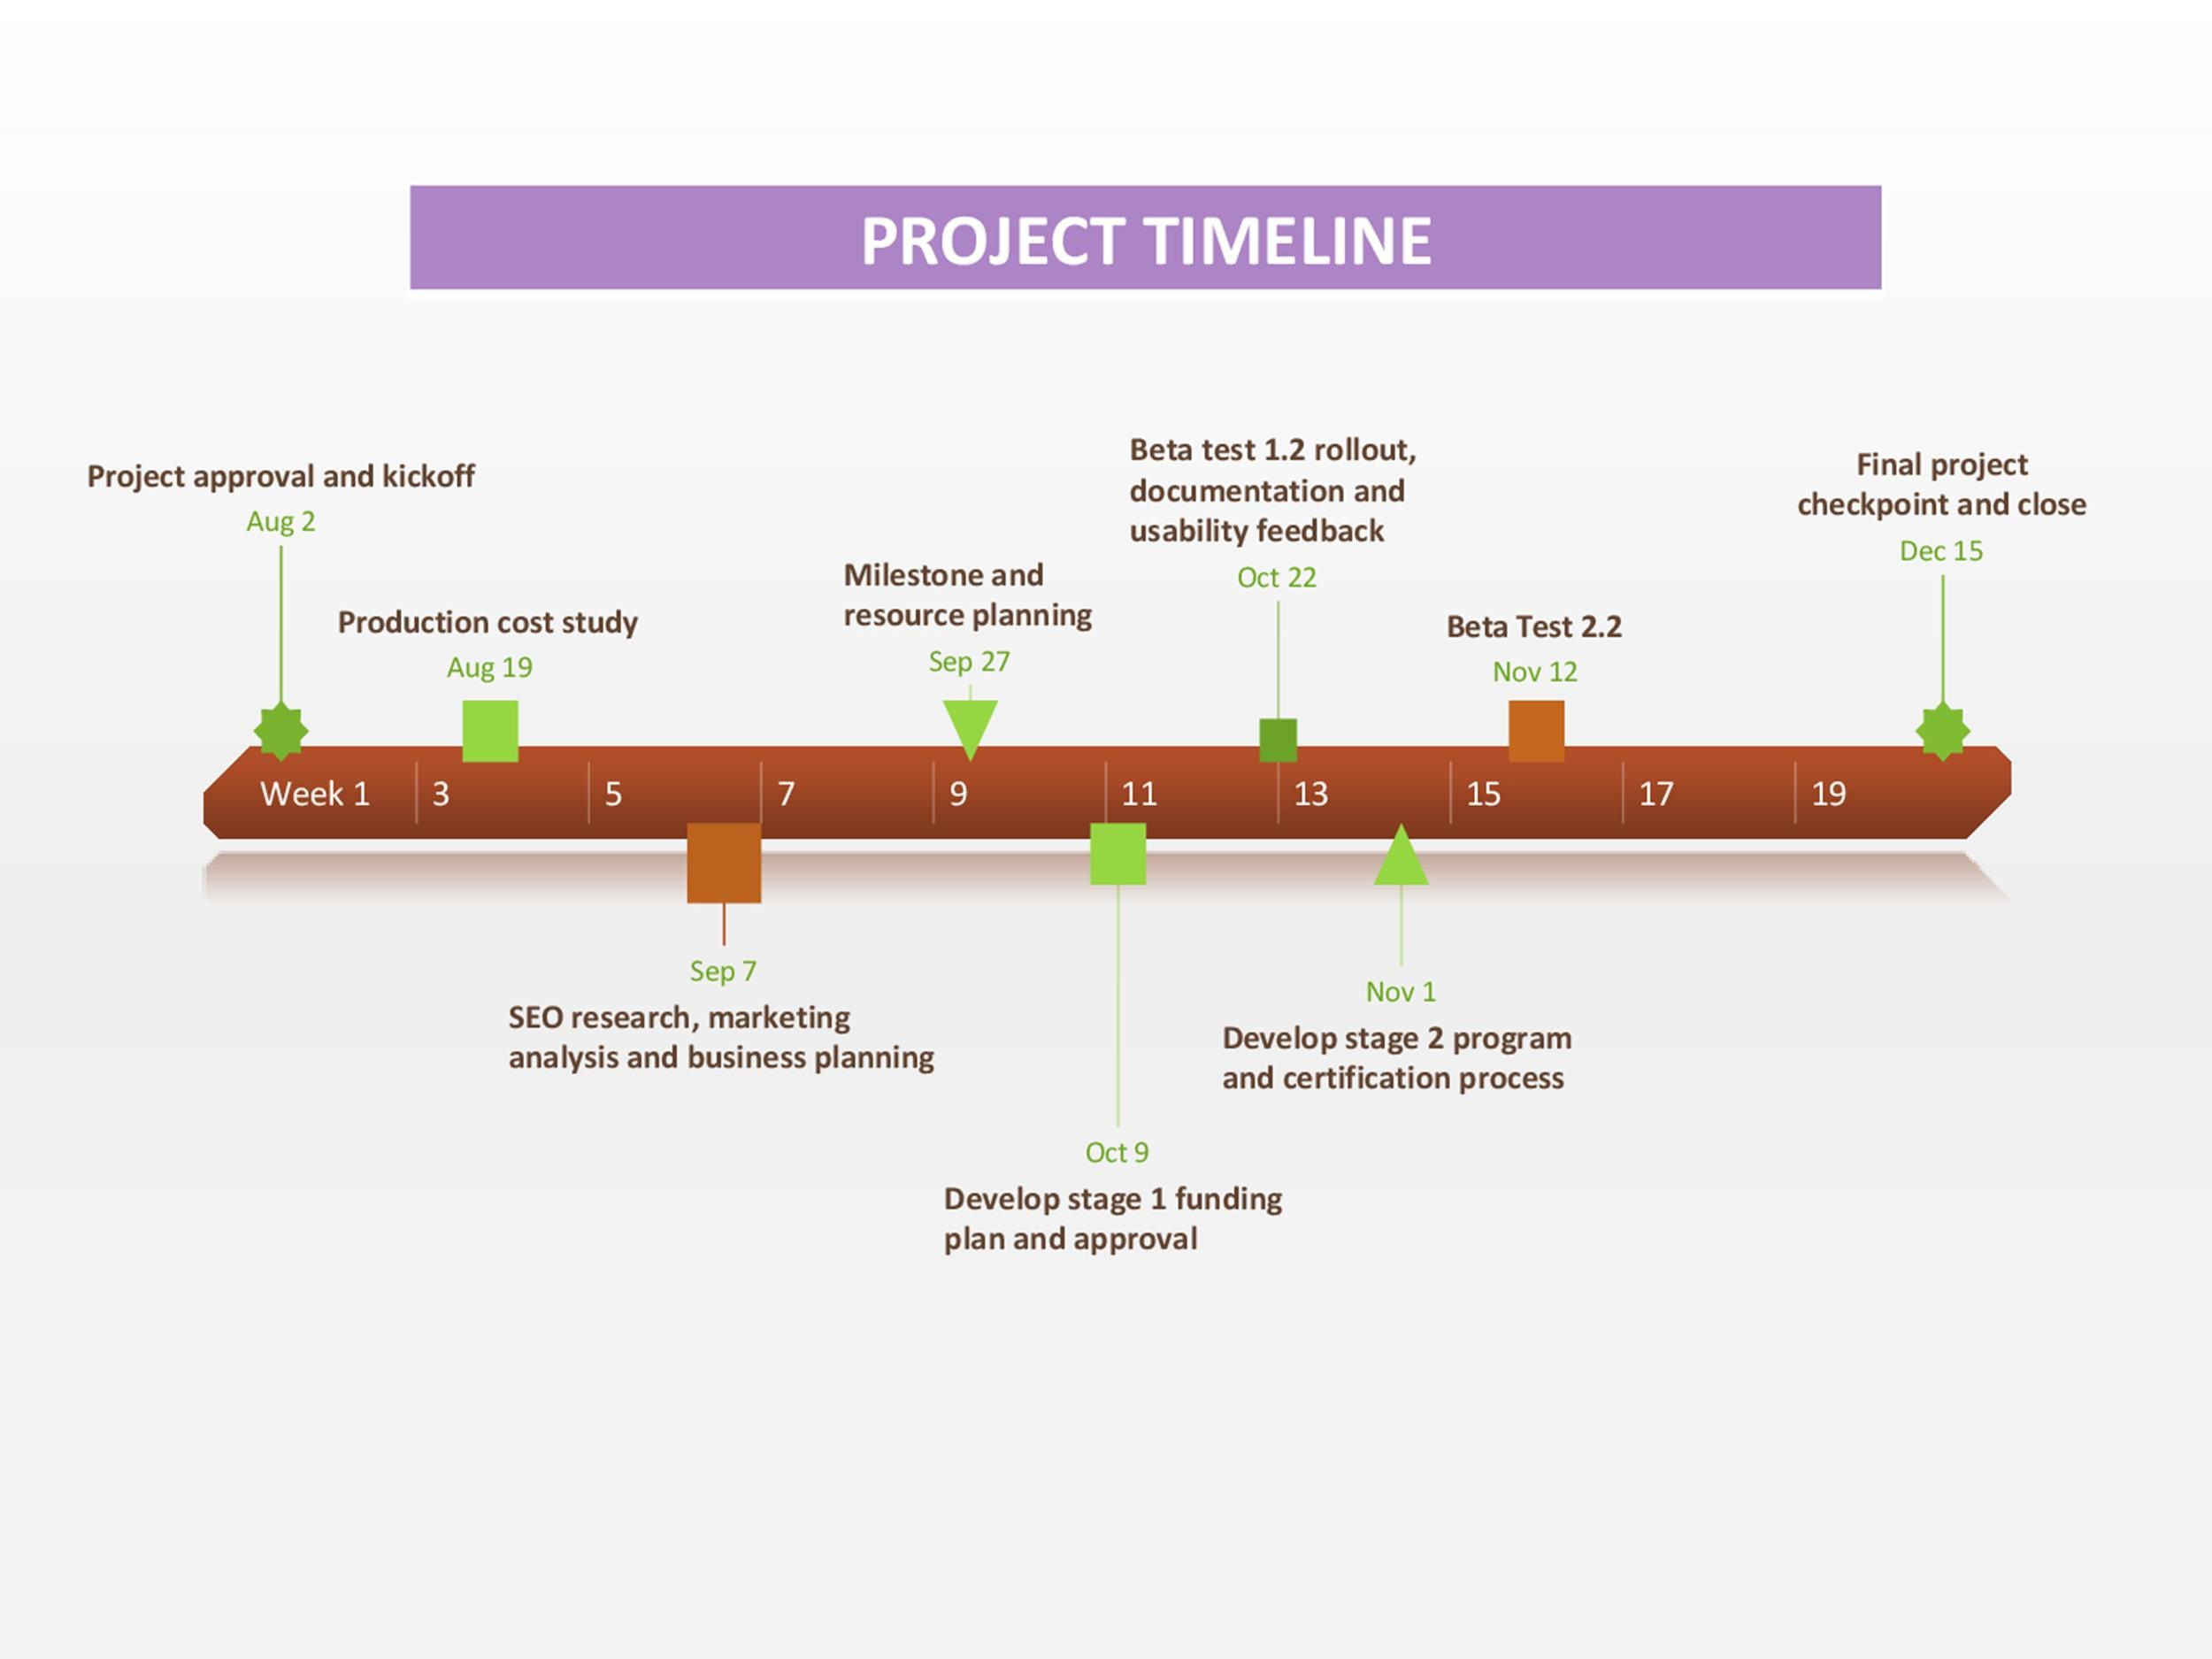 004 Beautiful Timeline Template For Word 2016 High Definition Full